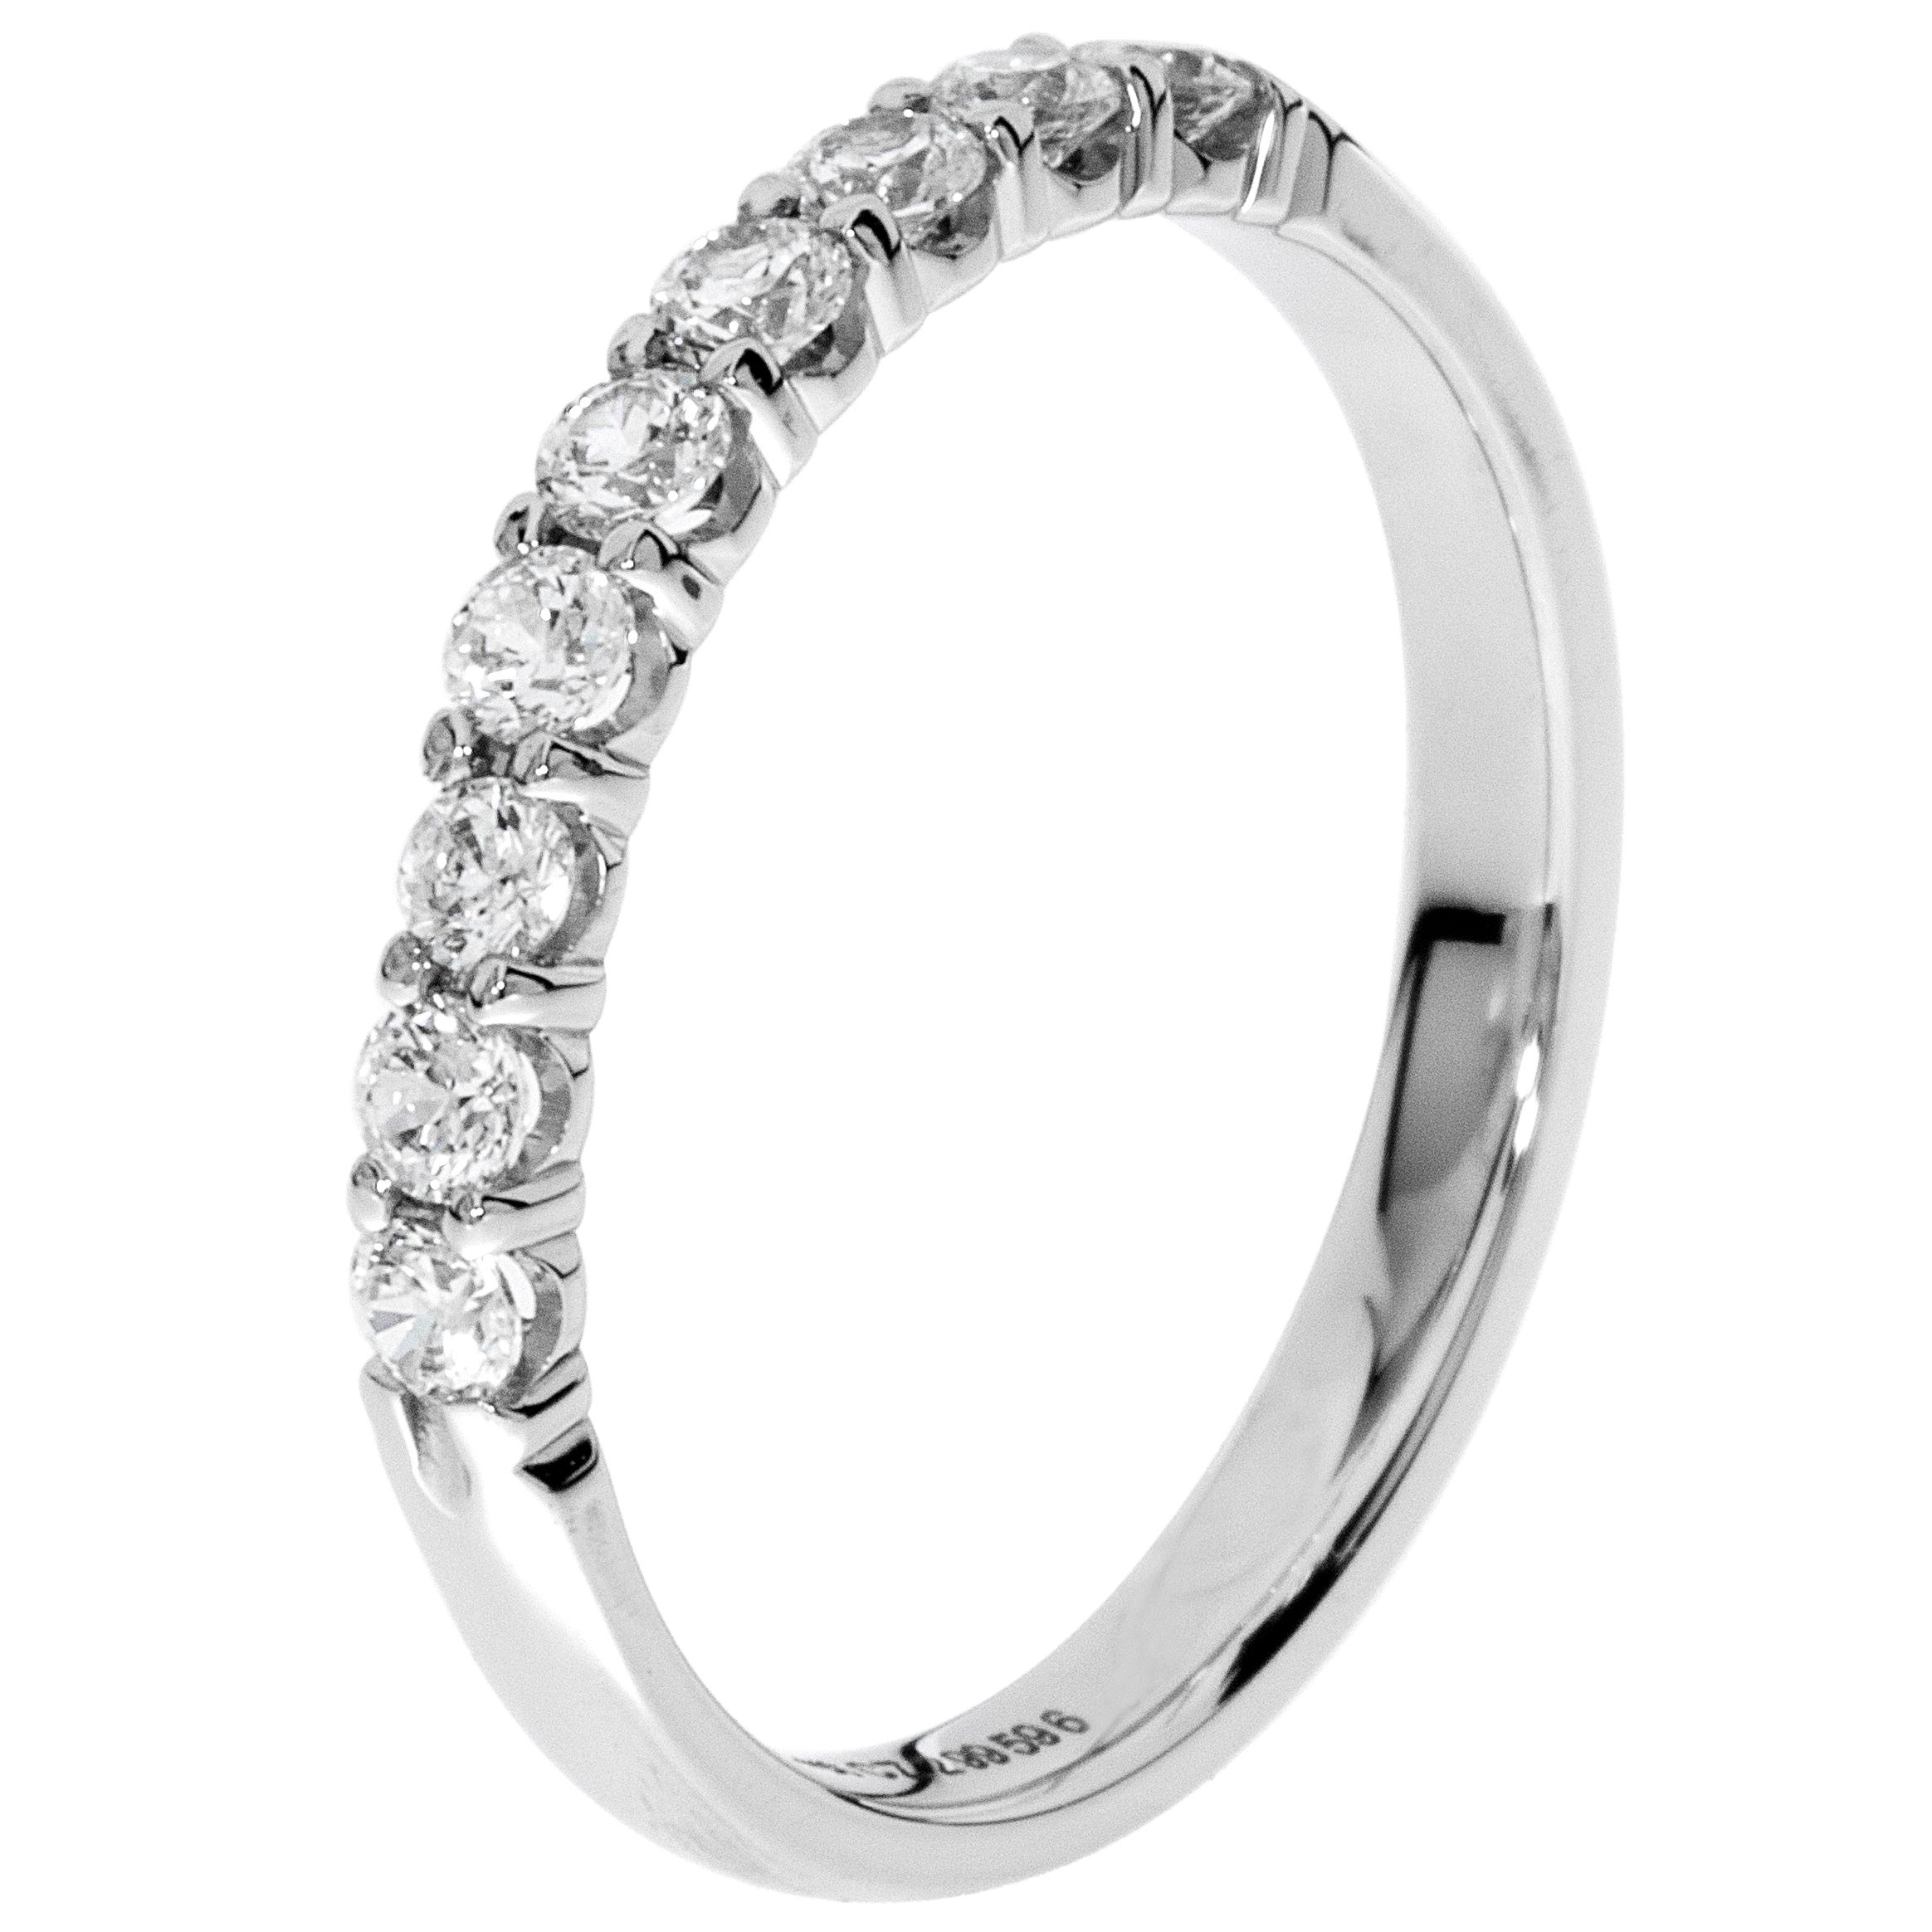 Platinum Diamond Wedding Band 1/3 ctw. (G-H, SI2)